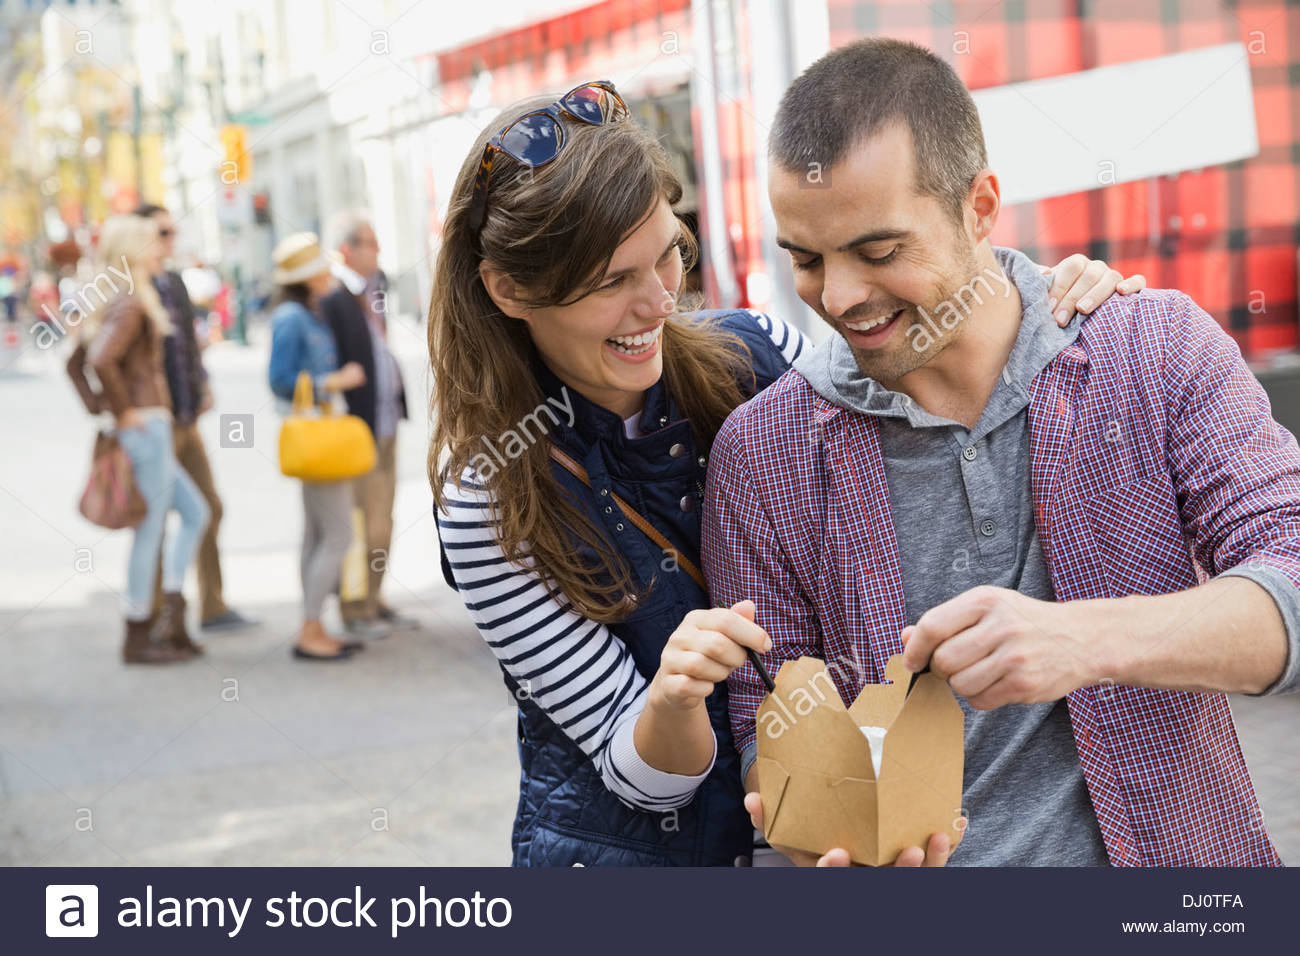 Smiling couple sharing a meal from a food truck - Stock Image